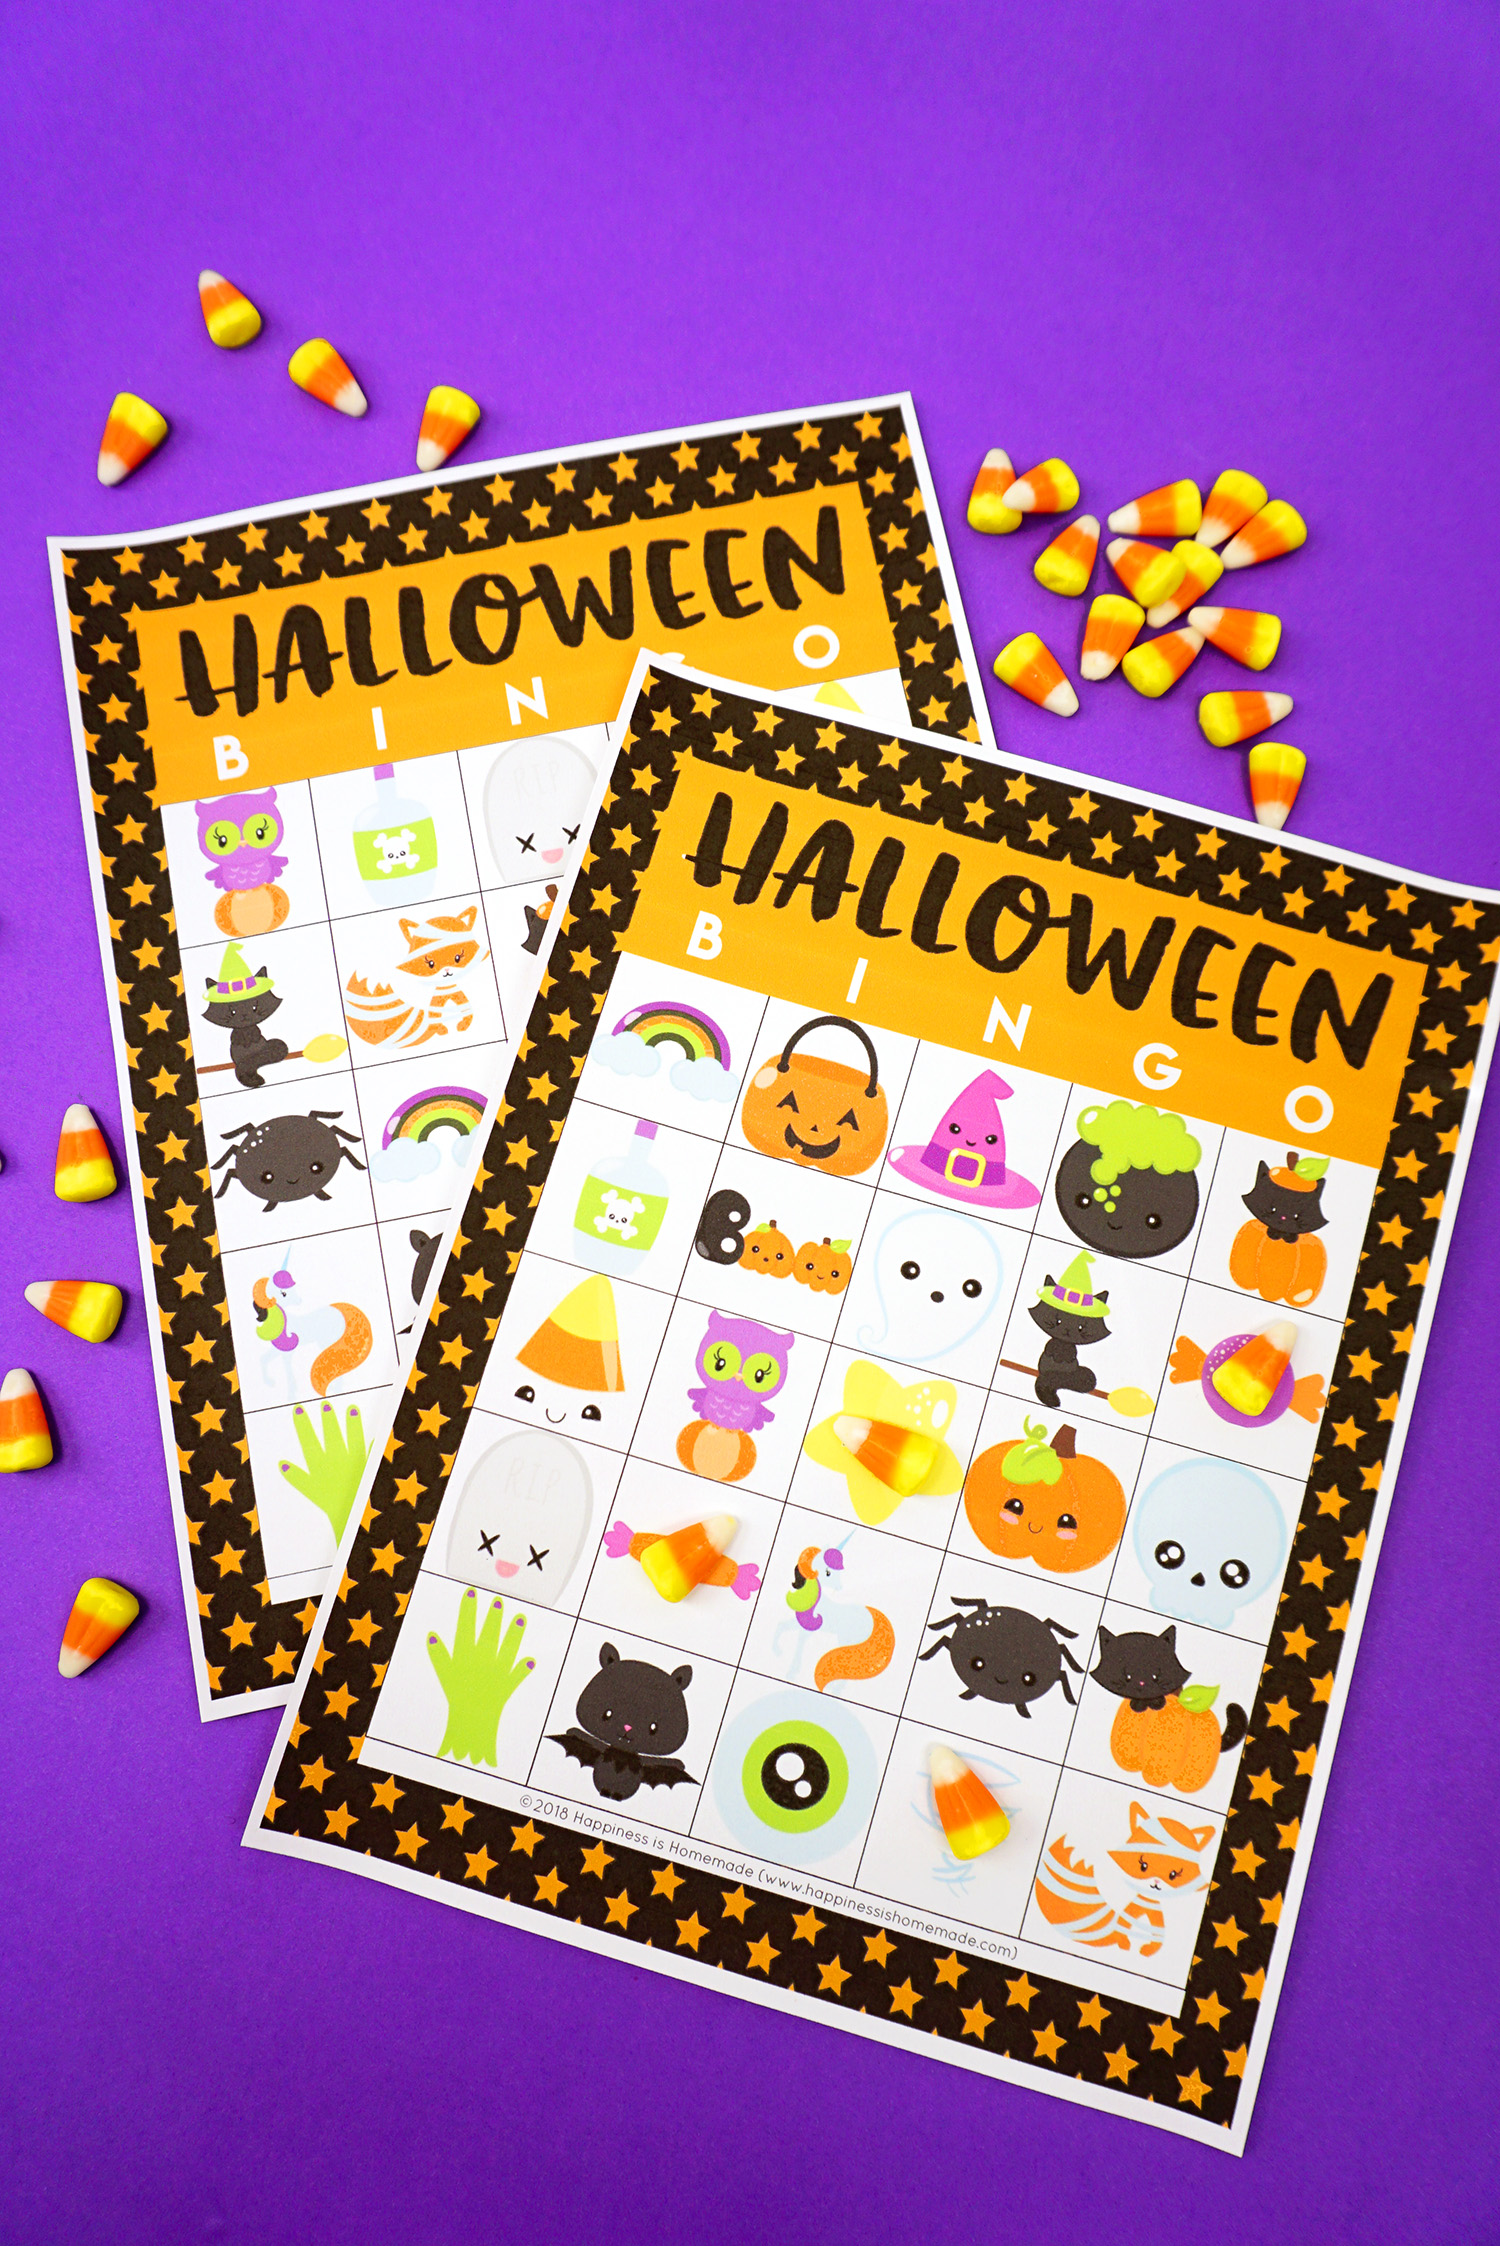 picture regarding Printable Halloween Bingo Card titled Printable Halloween Bingo Playing cards - Joy is Handmade